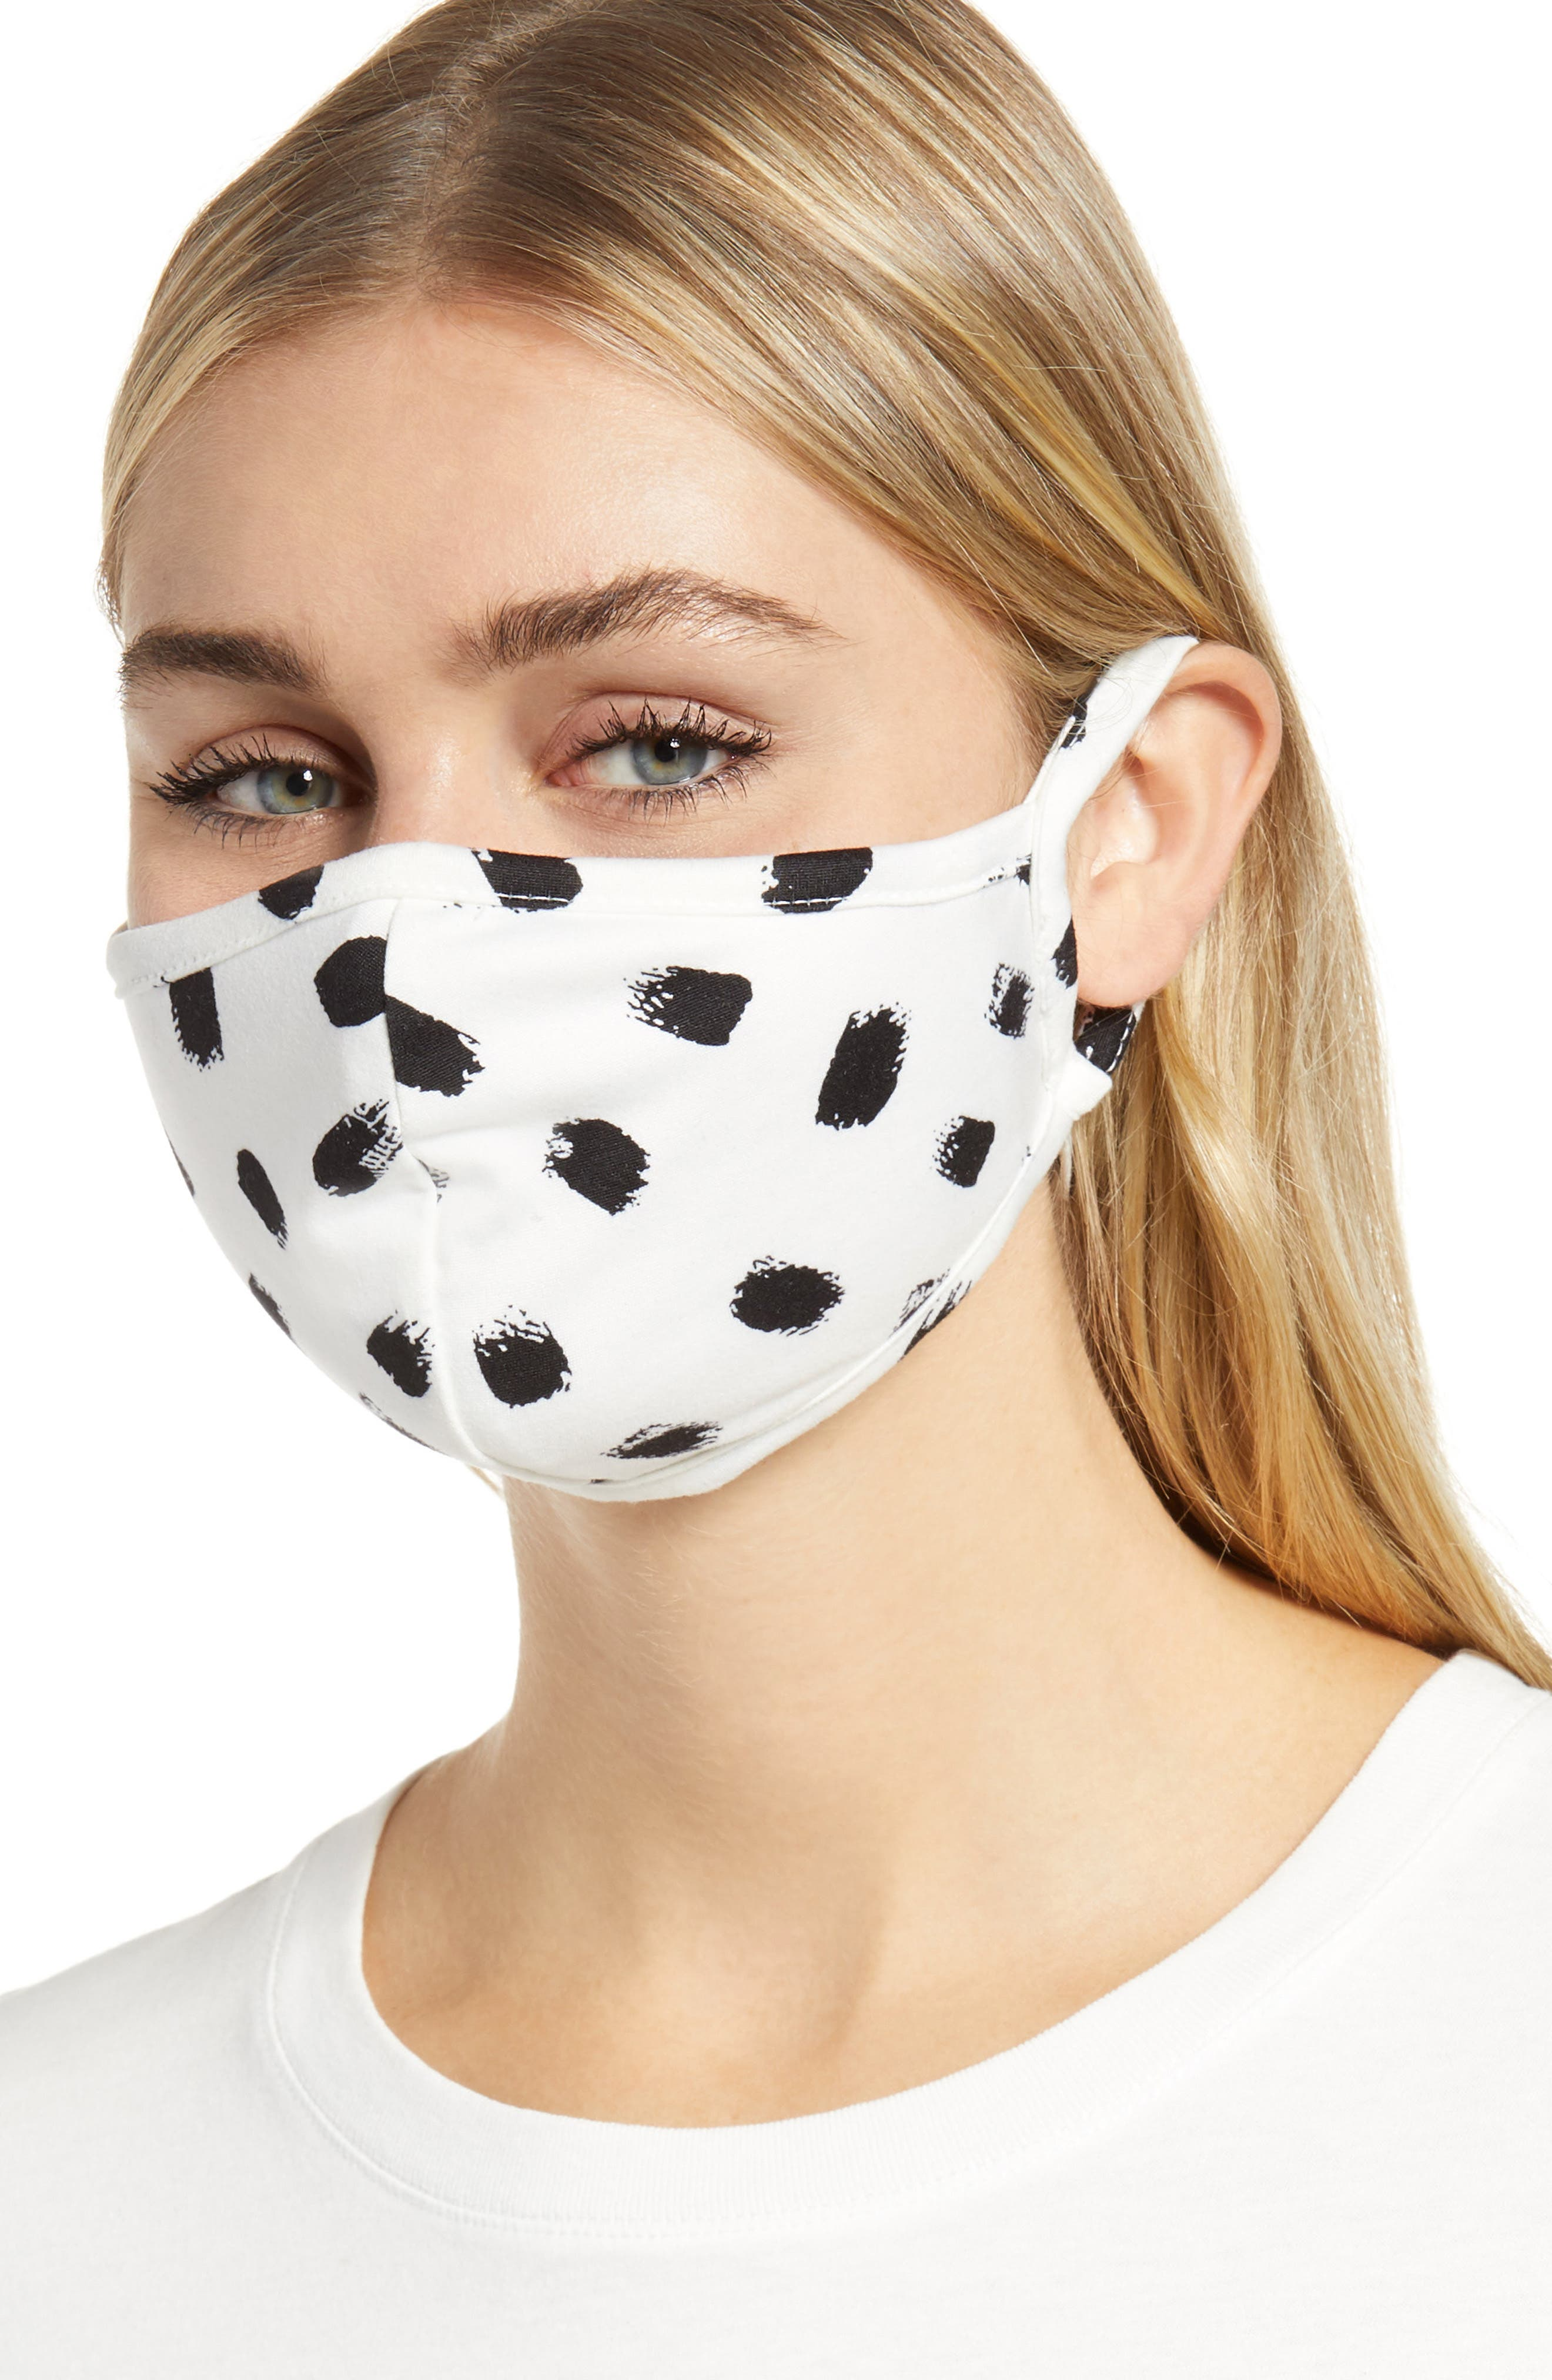 Image of Nordstrom Assorted Non-Medical Adult Face Masks - Pack of 4